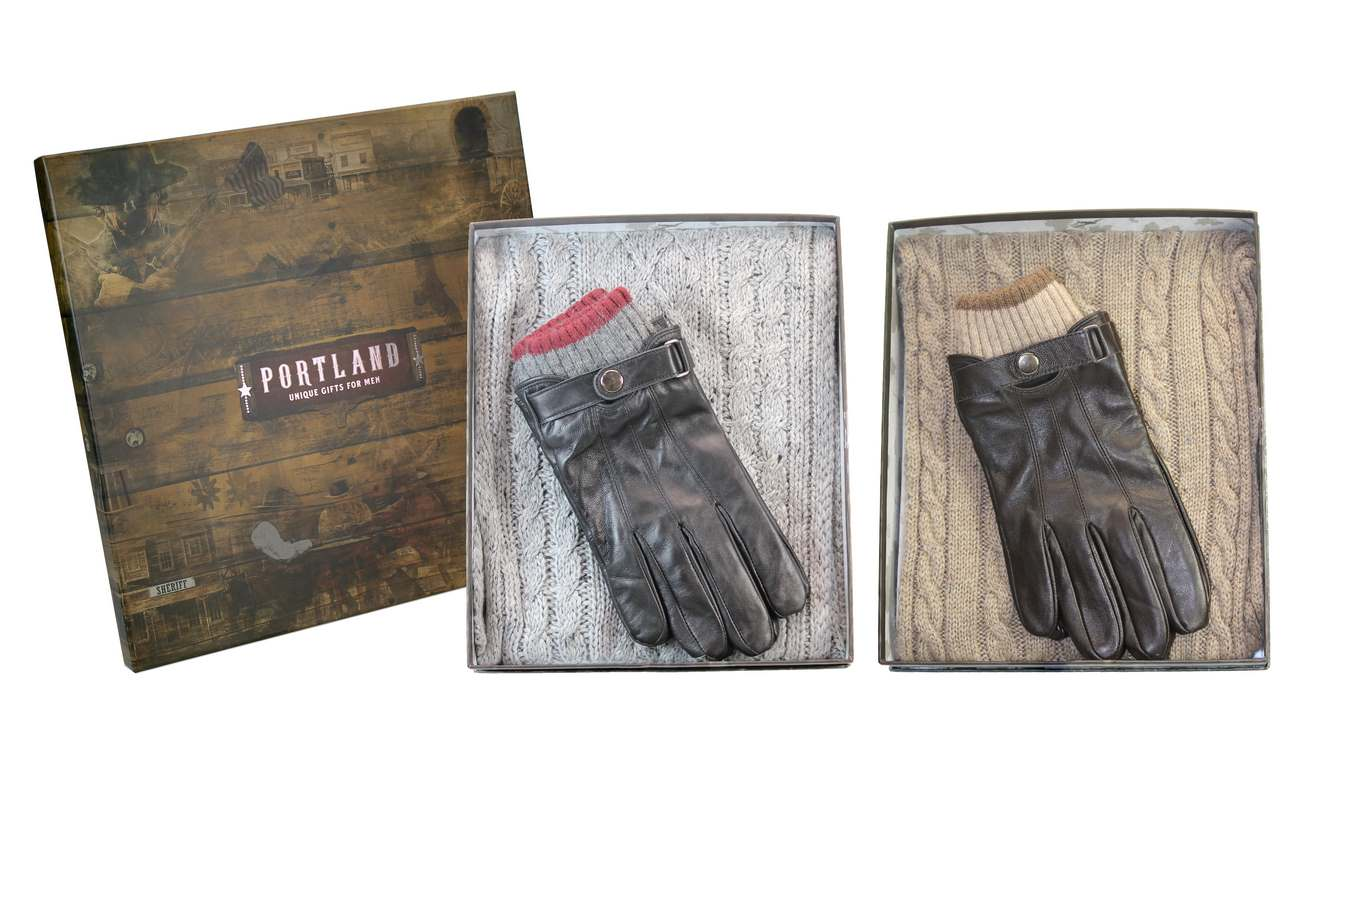 Portland Men's Cable Knit Scarf and Leather Glove Set